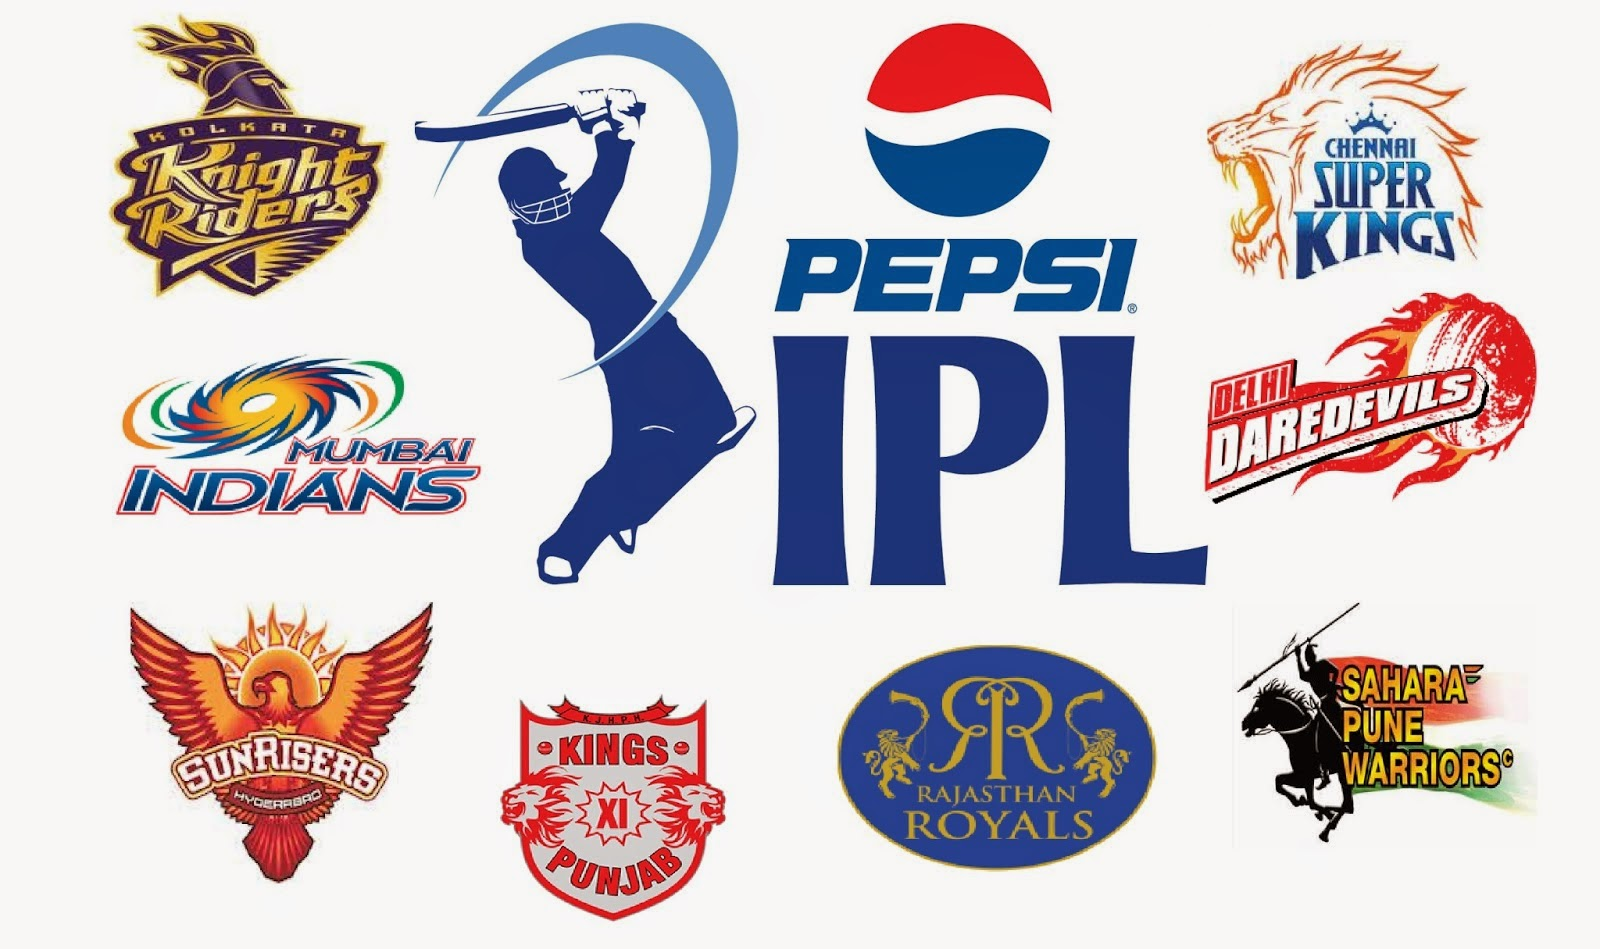 Ipl 2015 remaining auction money | IPL 2015 Live streaming - IPL.